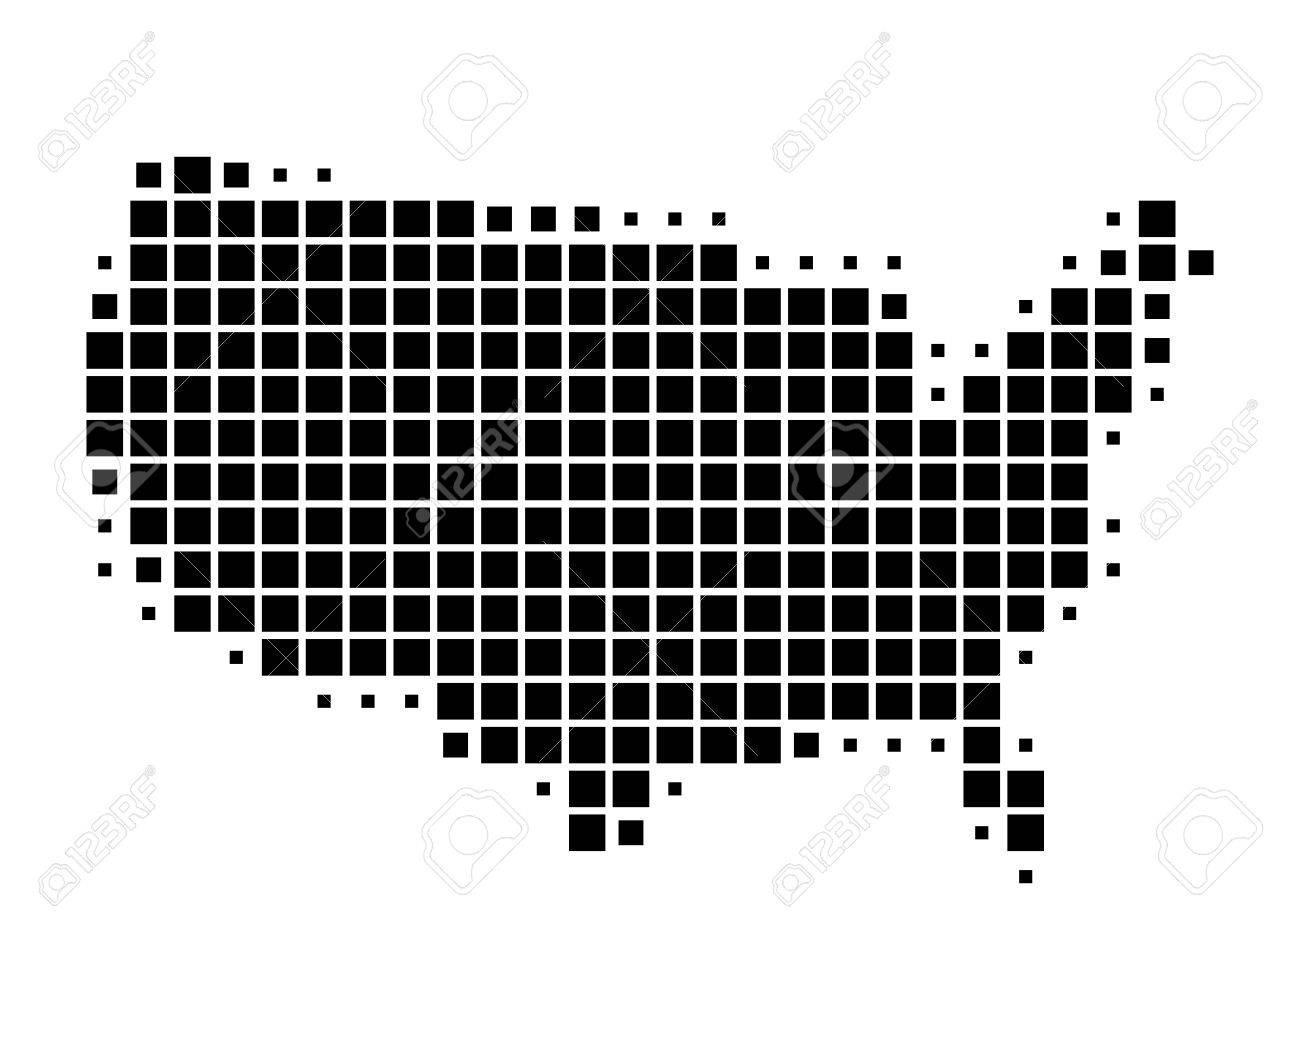 Us Map Stock Vector Illustration And Royalty Free Us Map - White vector map of the us